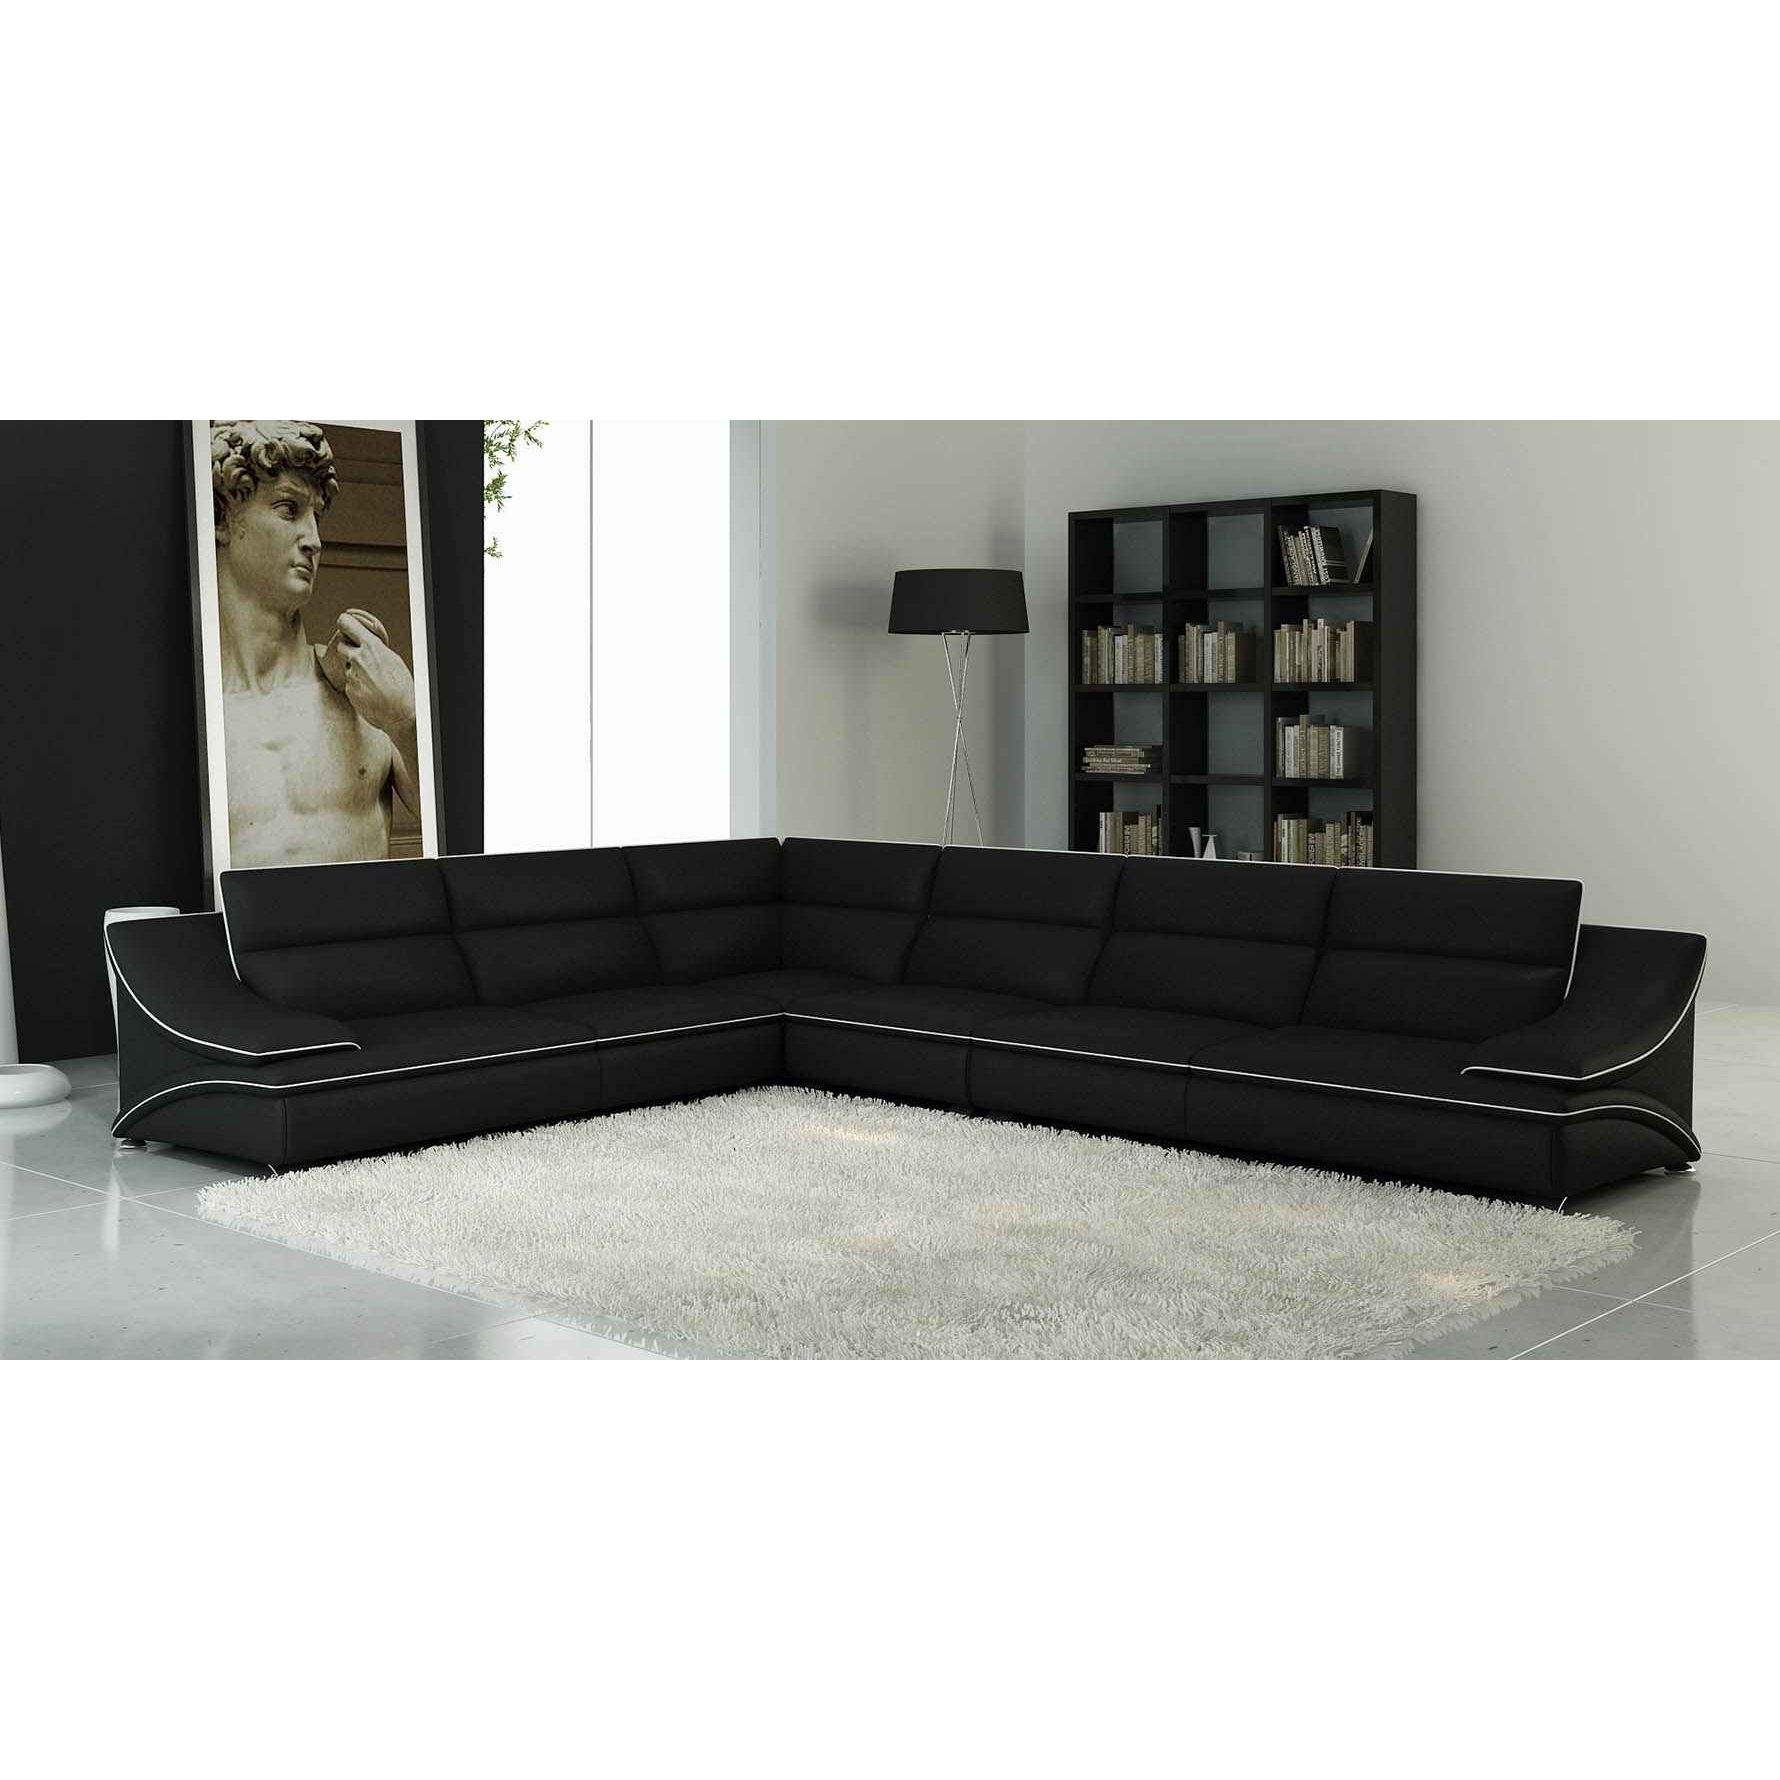 Deco in paris canape d angle modulable cuir design noir for Canape noir et blanc design